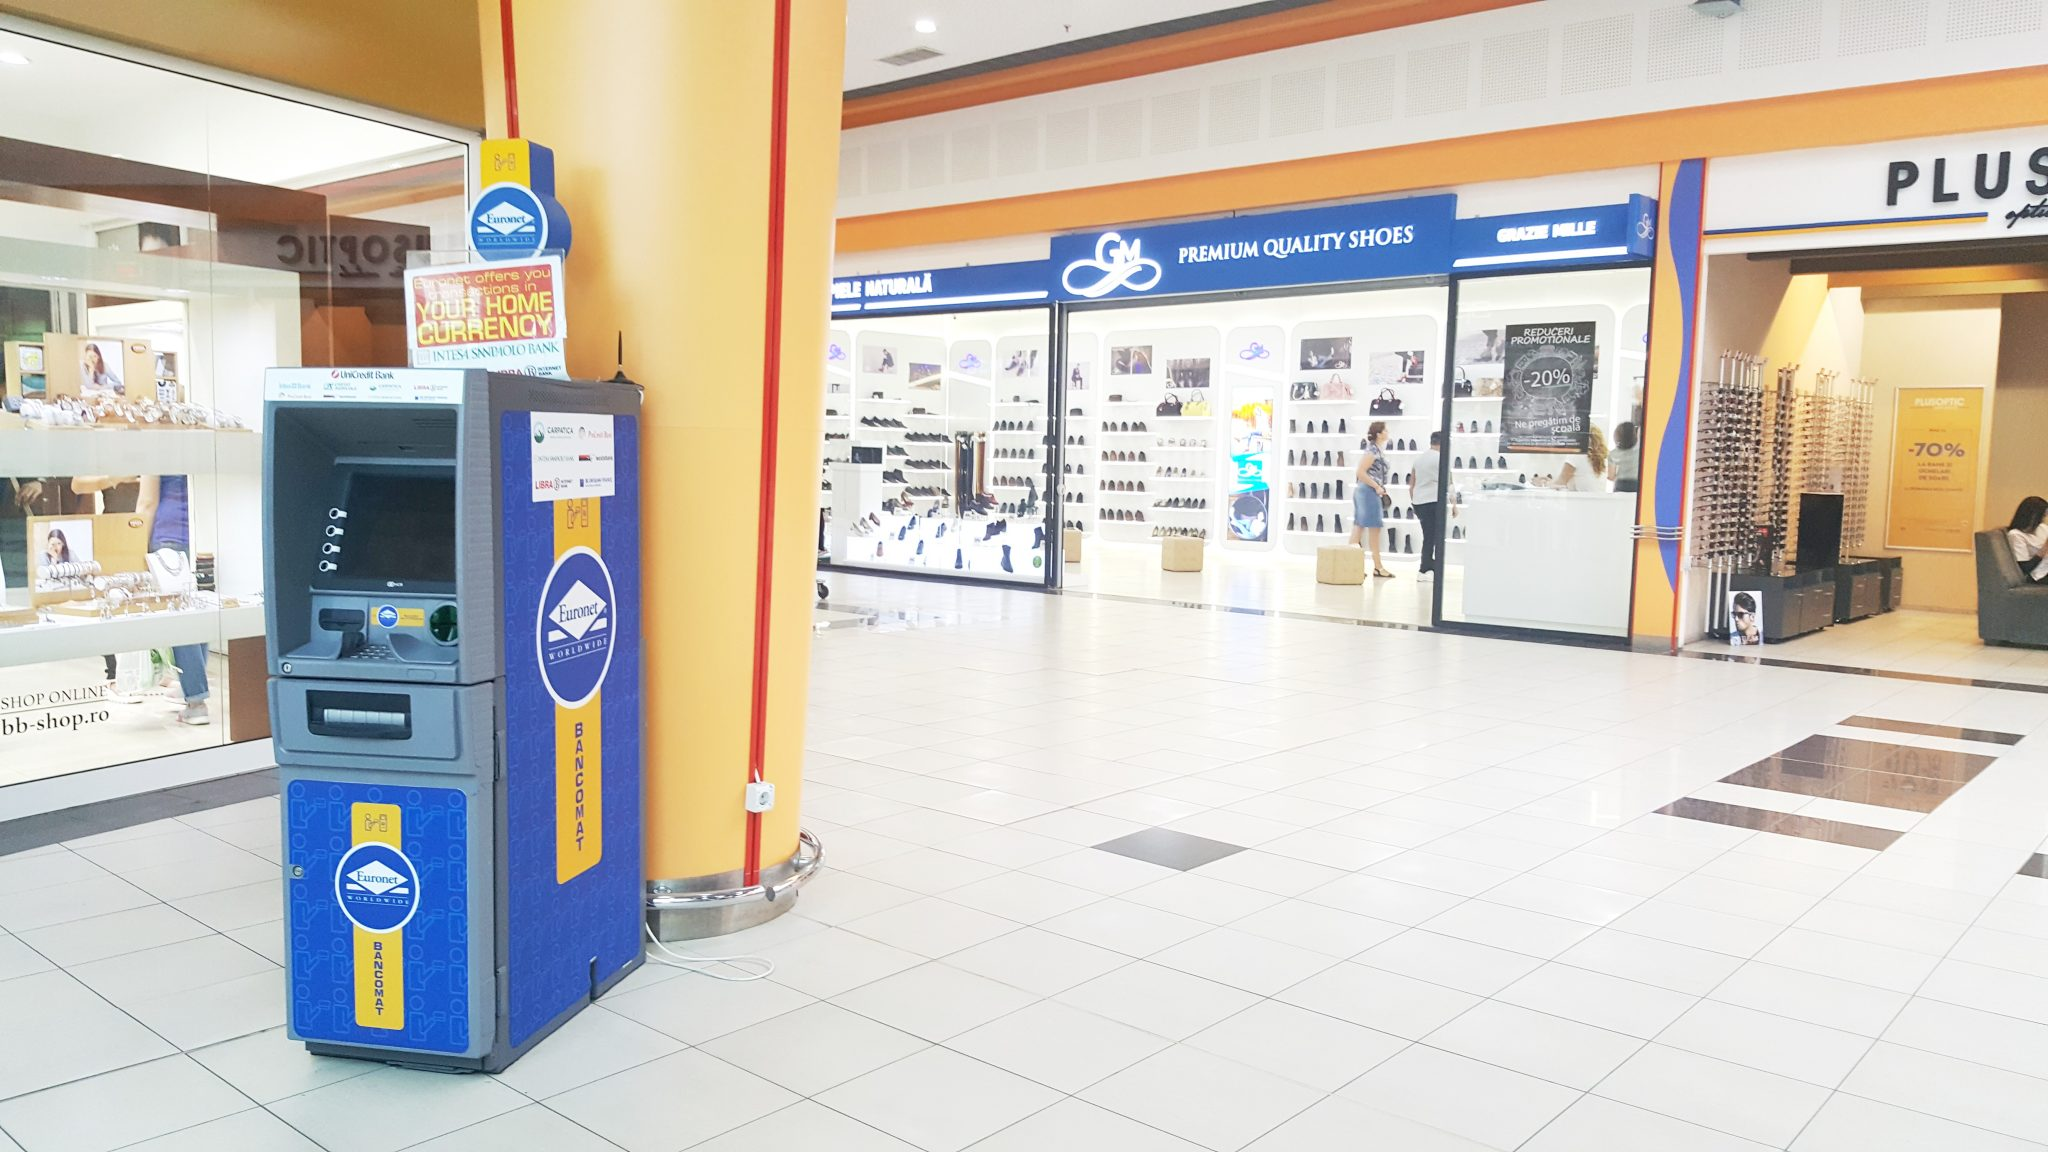 euronet-services-atm-in-front-of-splendor-store